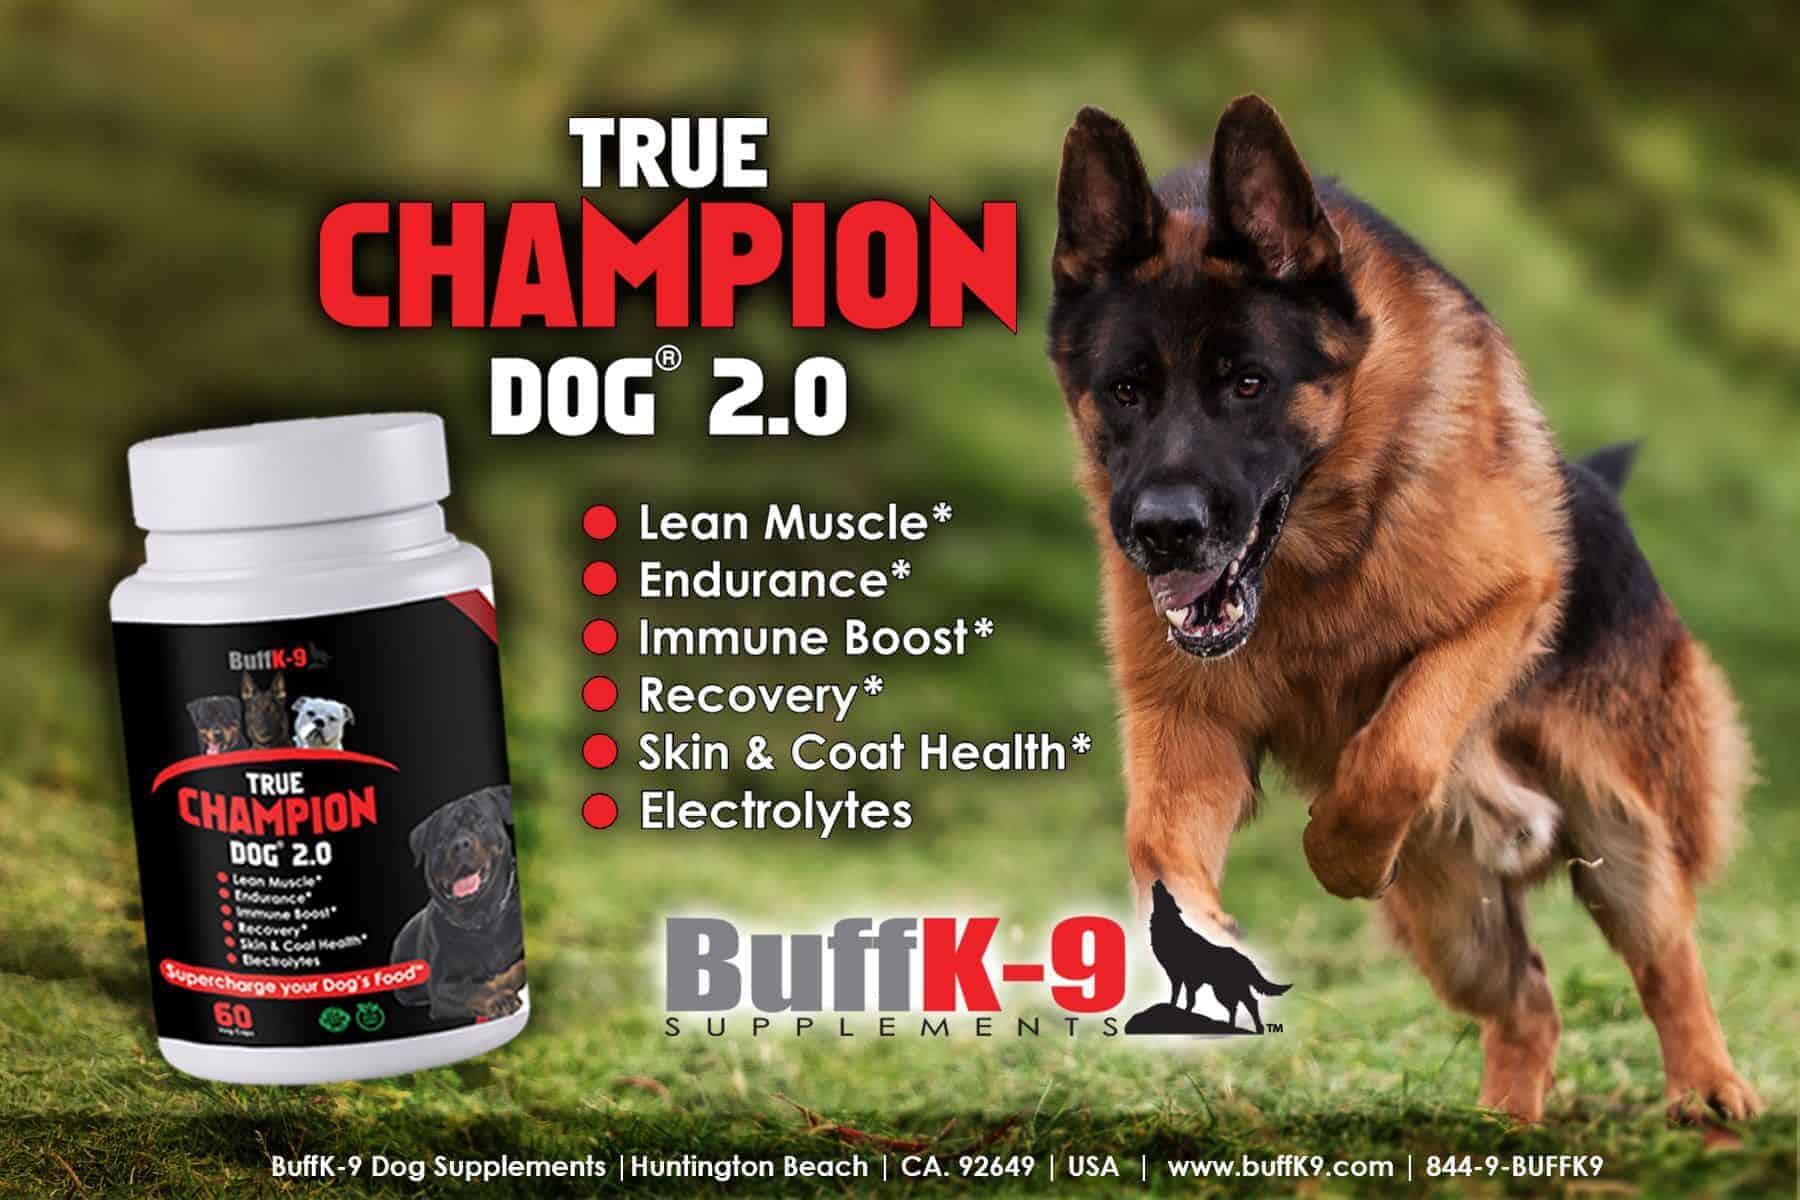 buffk9 german shepherd dog vitamin supplements health endurance